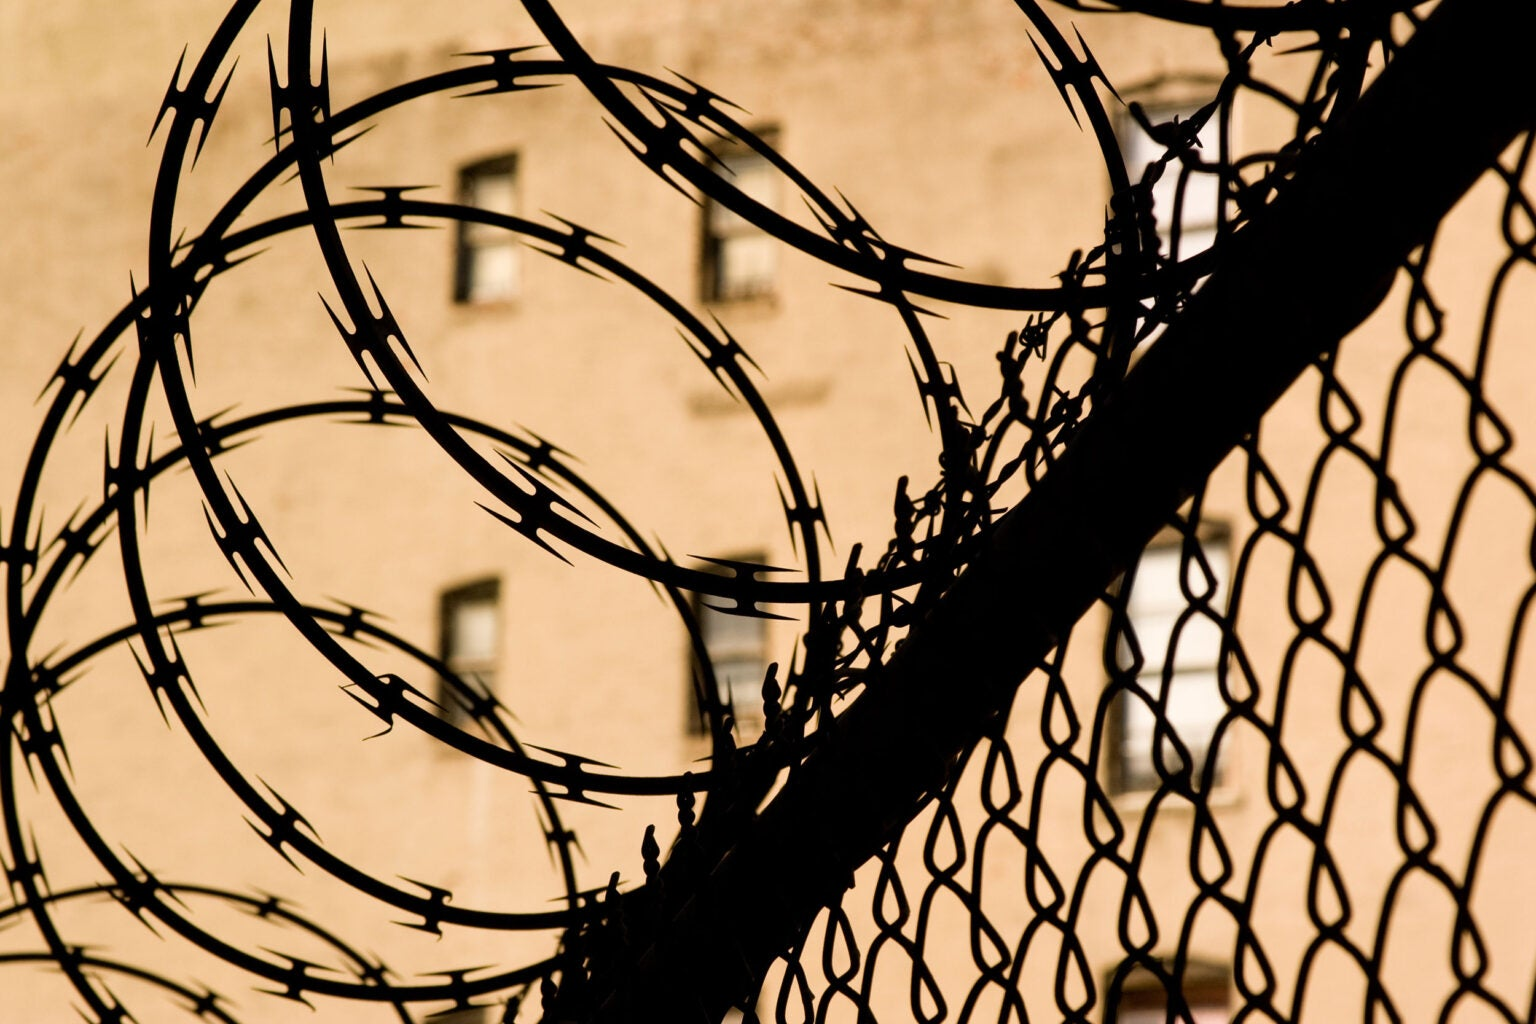 Crowding in Prisons Increases Inmates' Risk for Covid-19 Infections